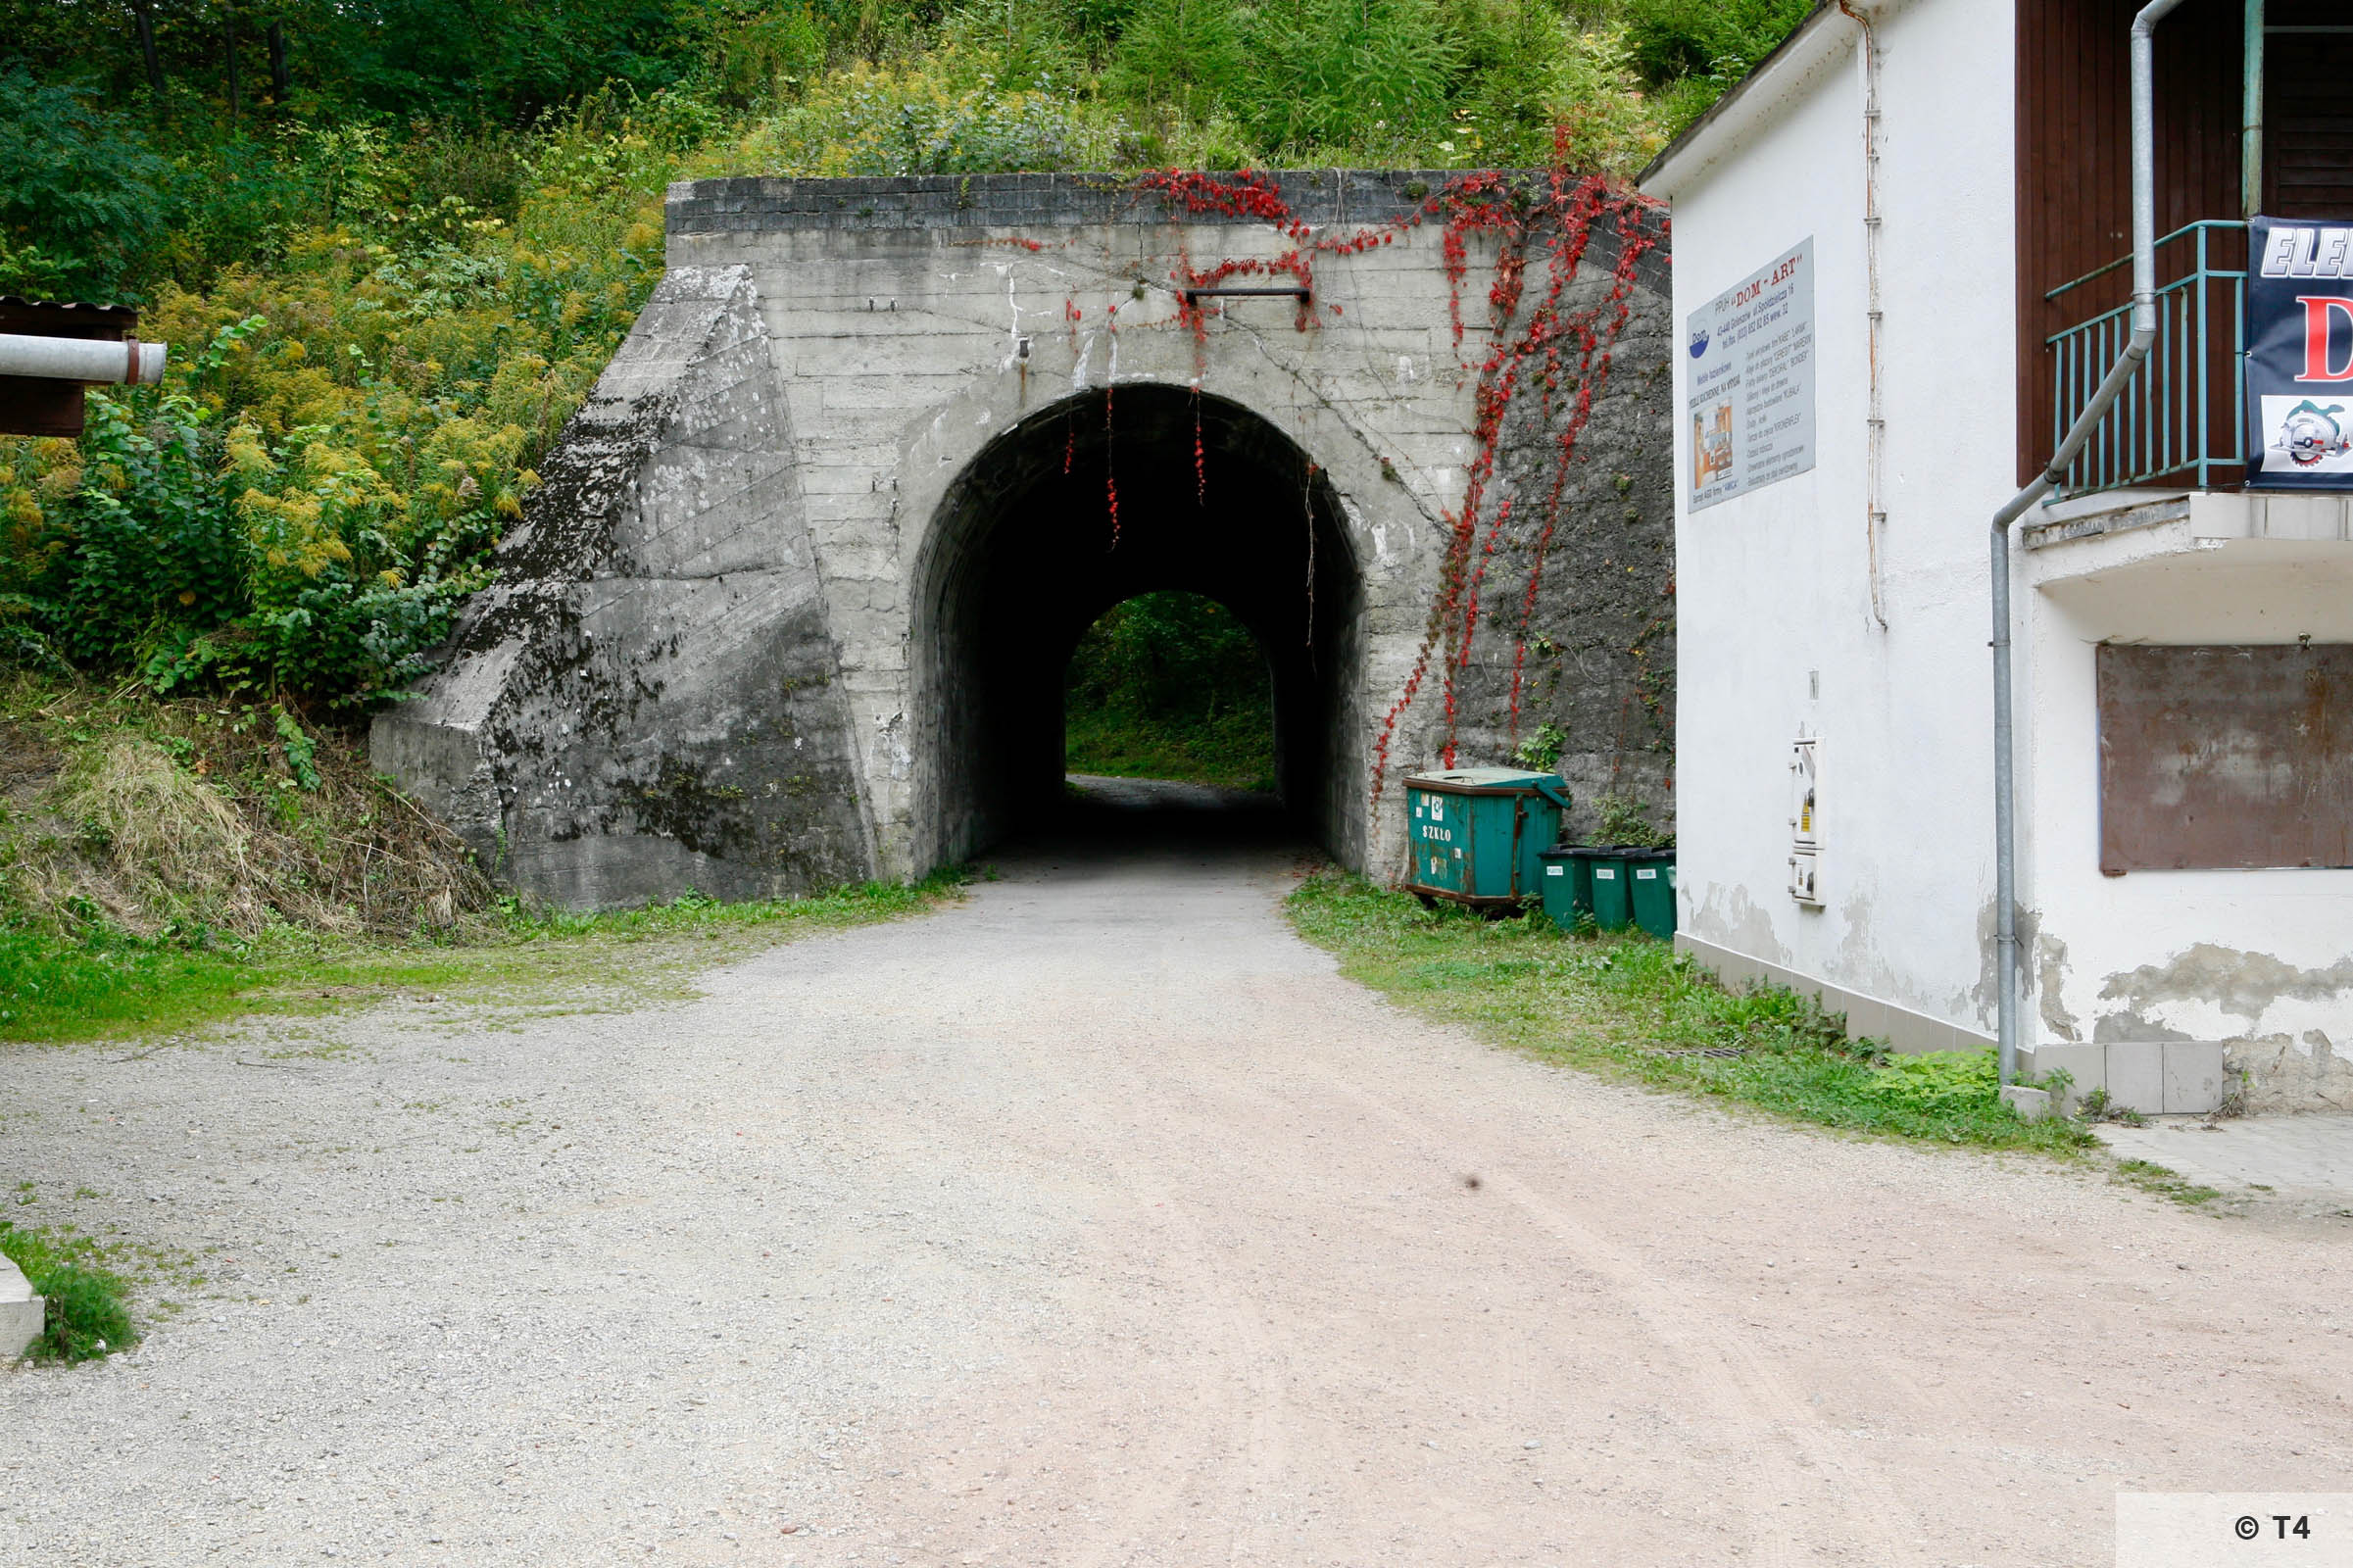 Tunnel under railway near quarry. 2006 T4 3355